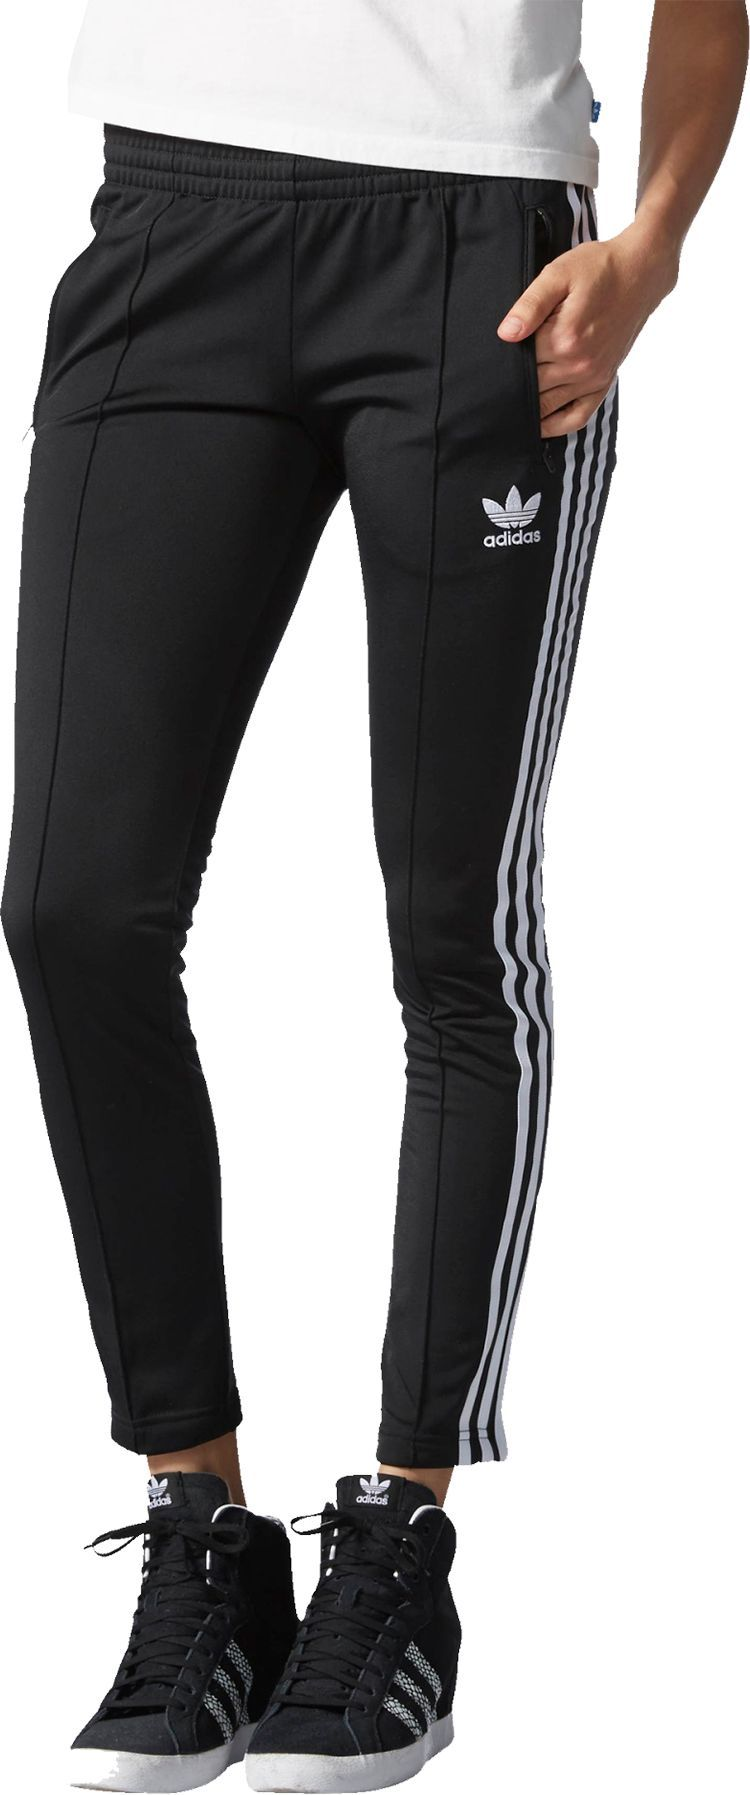 ff1e12684 adidas Originals Women's Supergirl Track Pants in 2019   Products ...